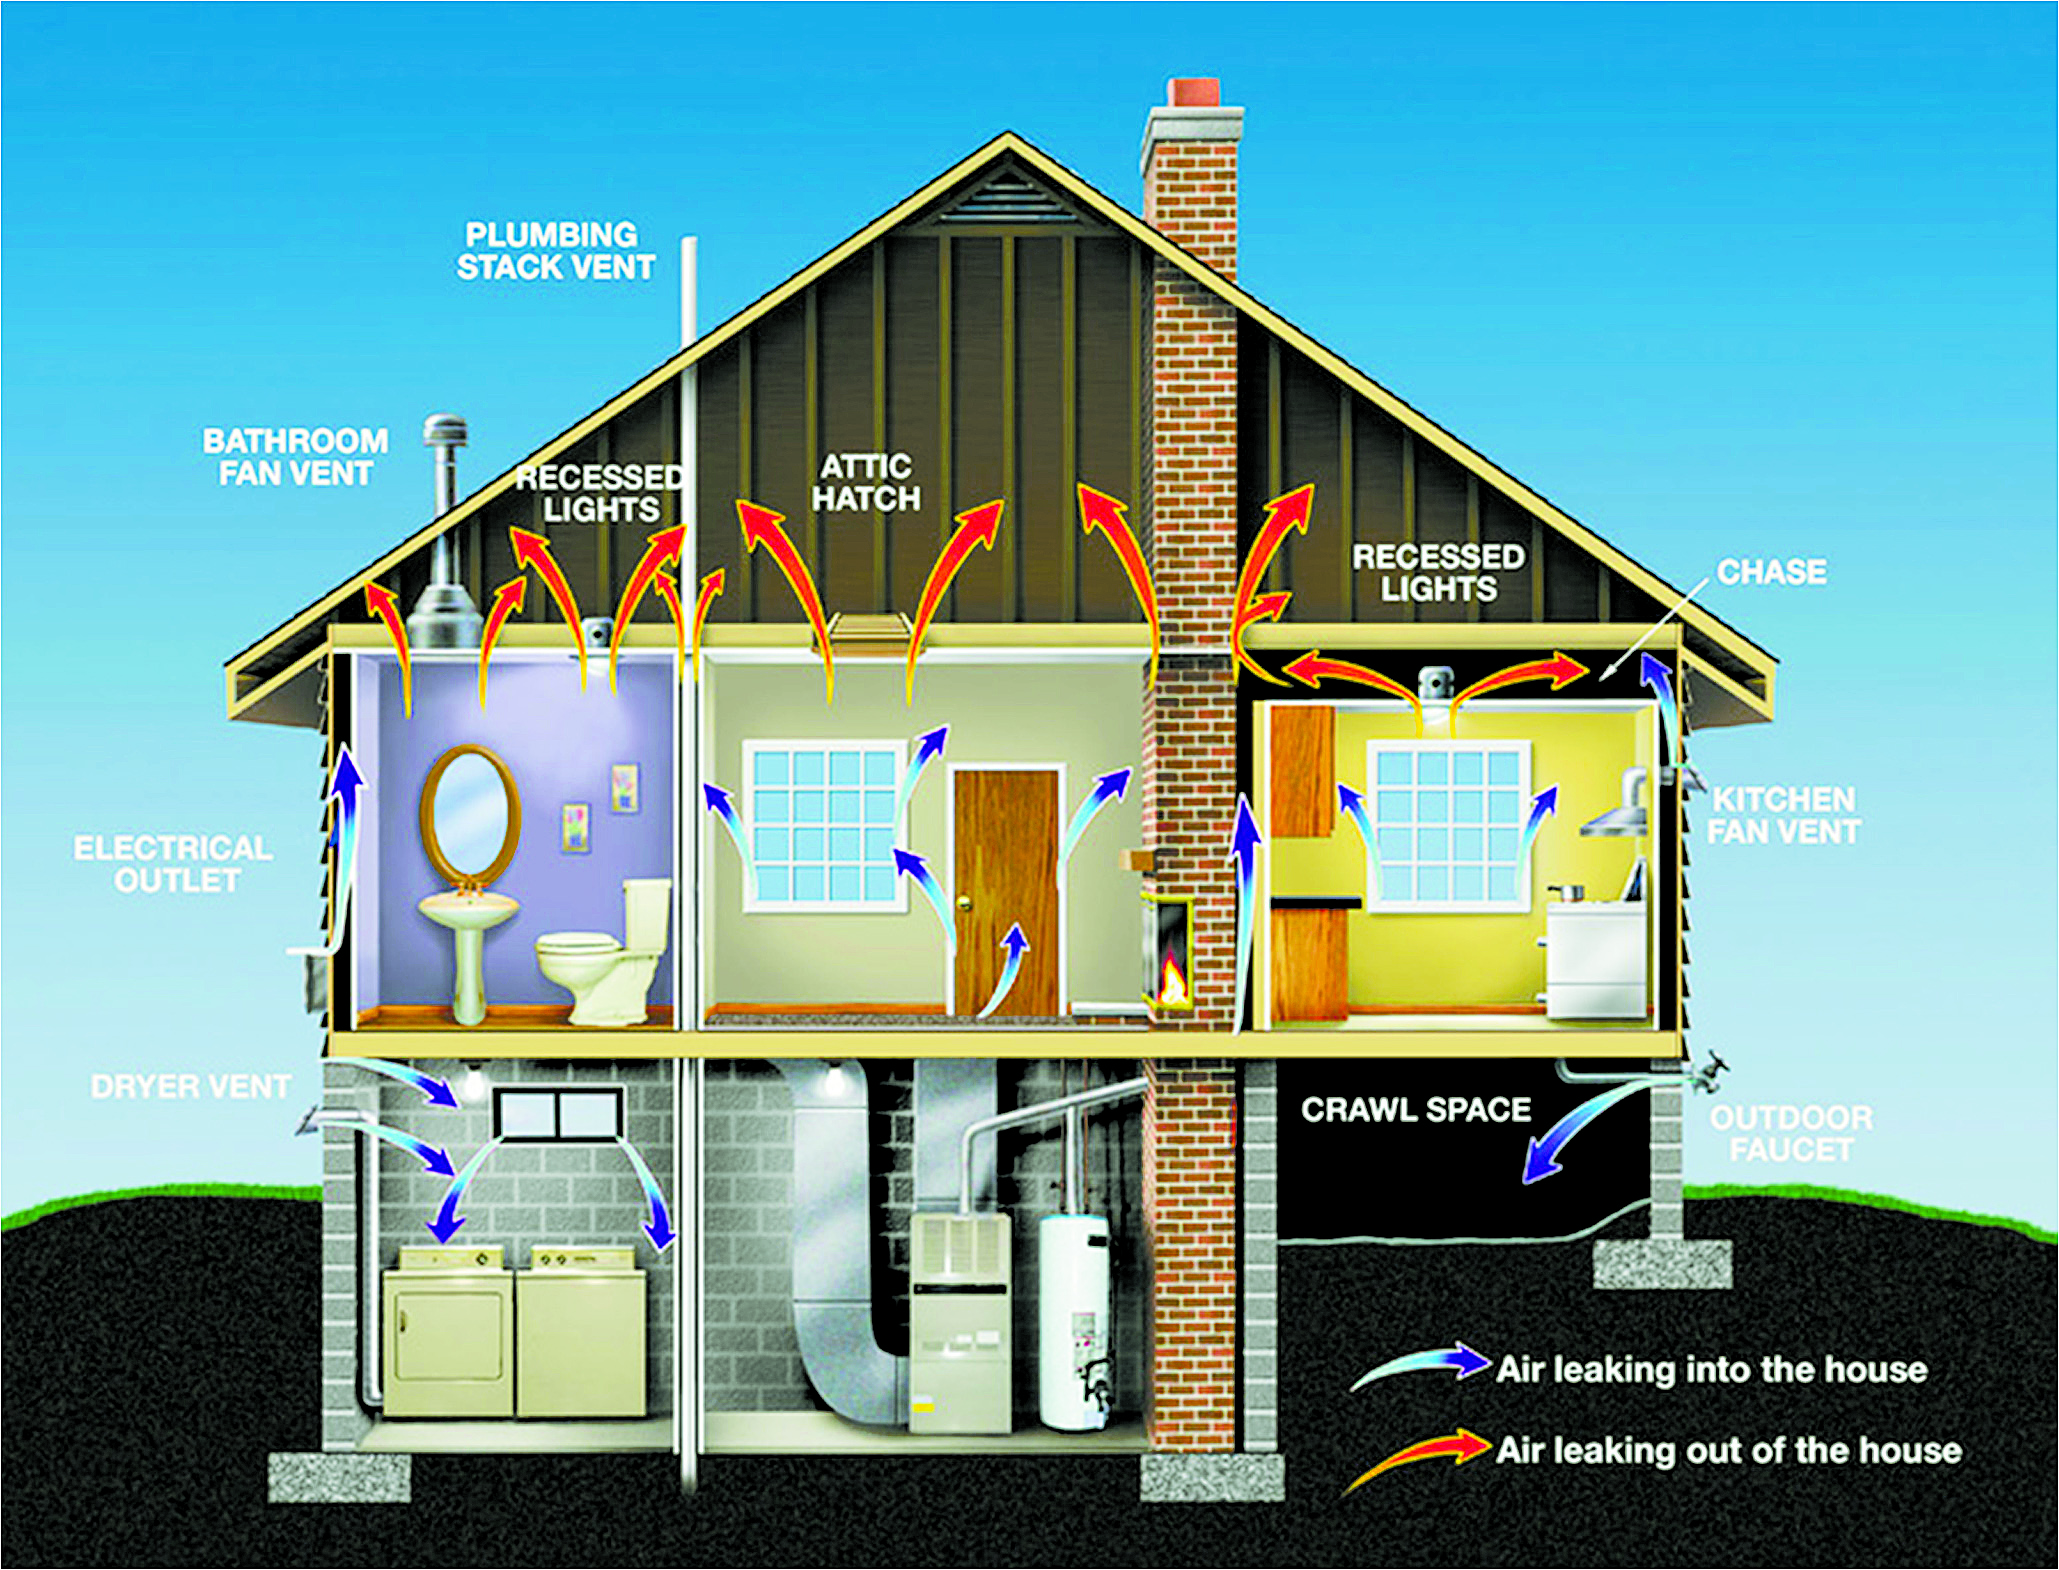 There are many locations in one's home where air leaks can occur. Photo courtesy Flickr.